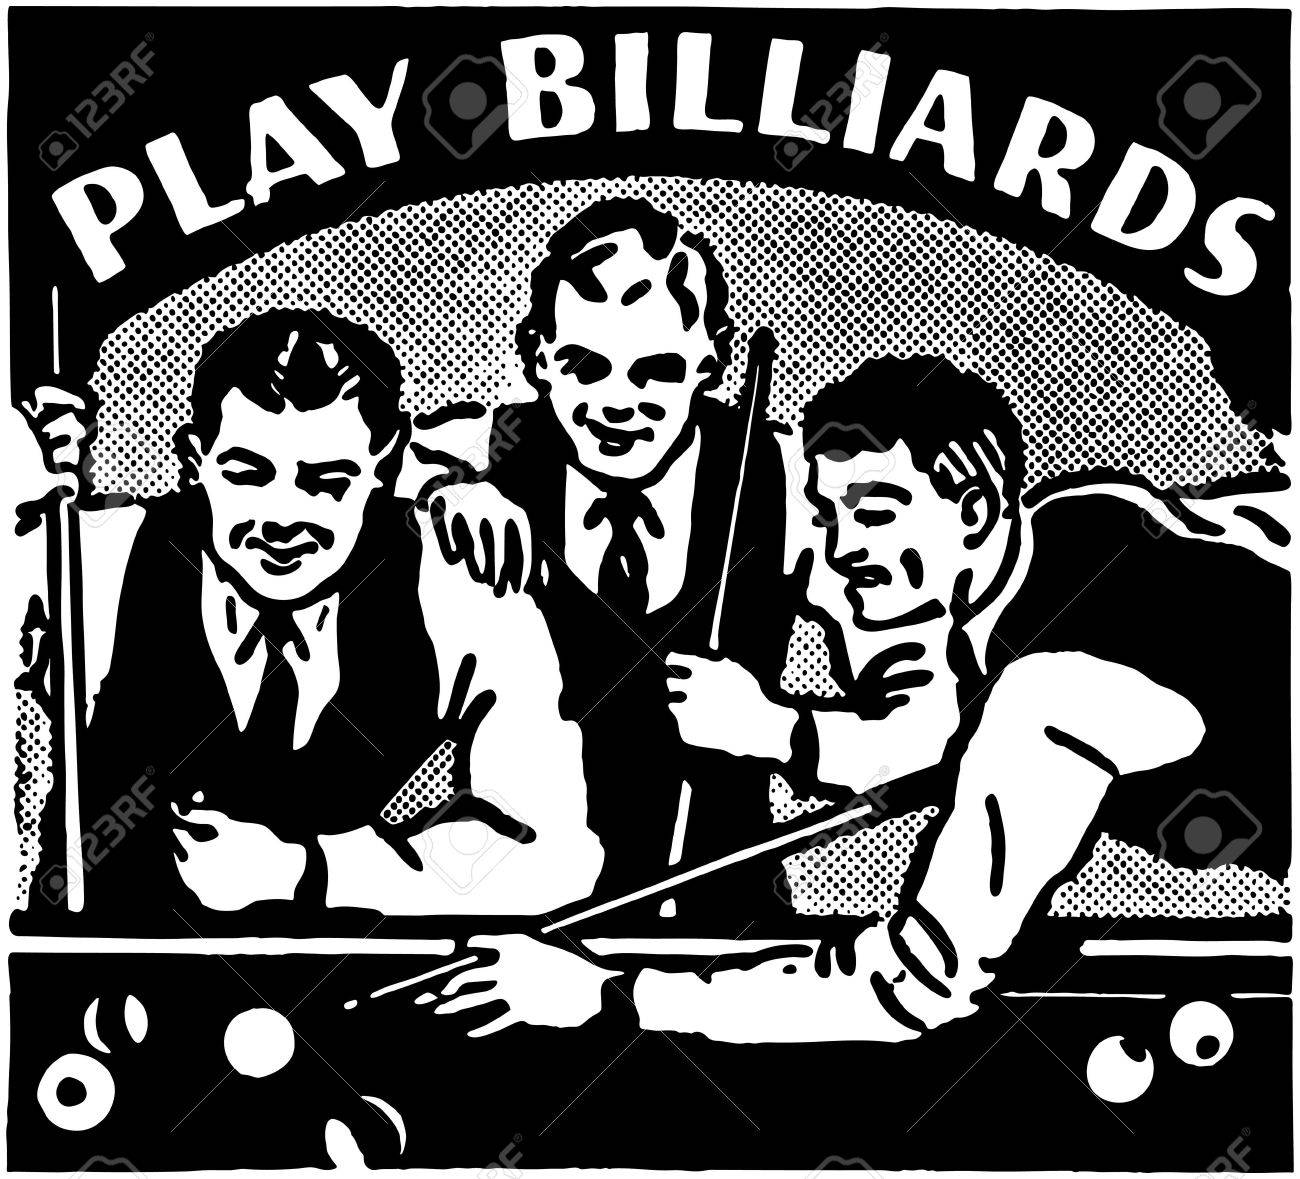 Play Billiards Banque d'images - 28343624